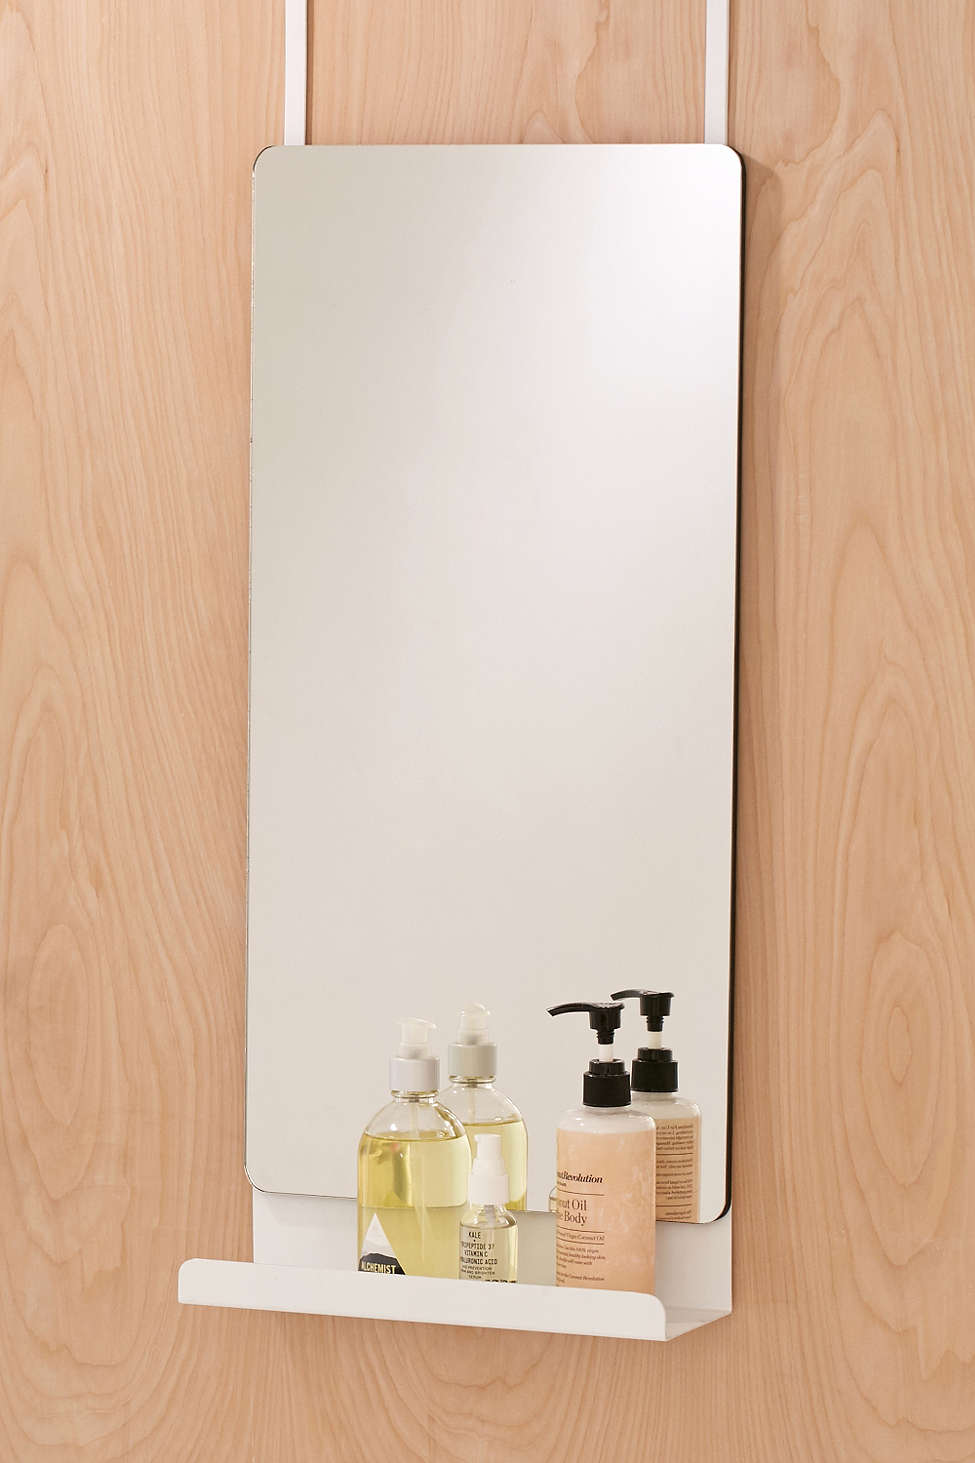 Over-the-door mirror from Urban Outfitters